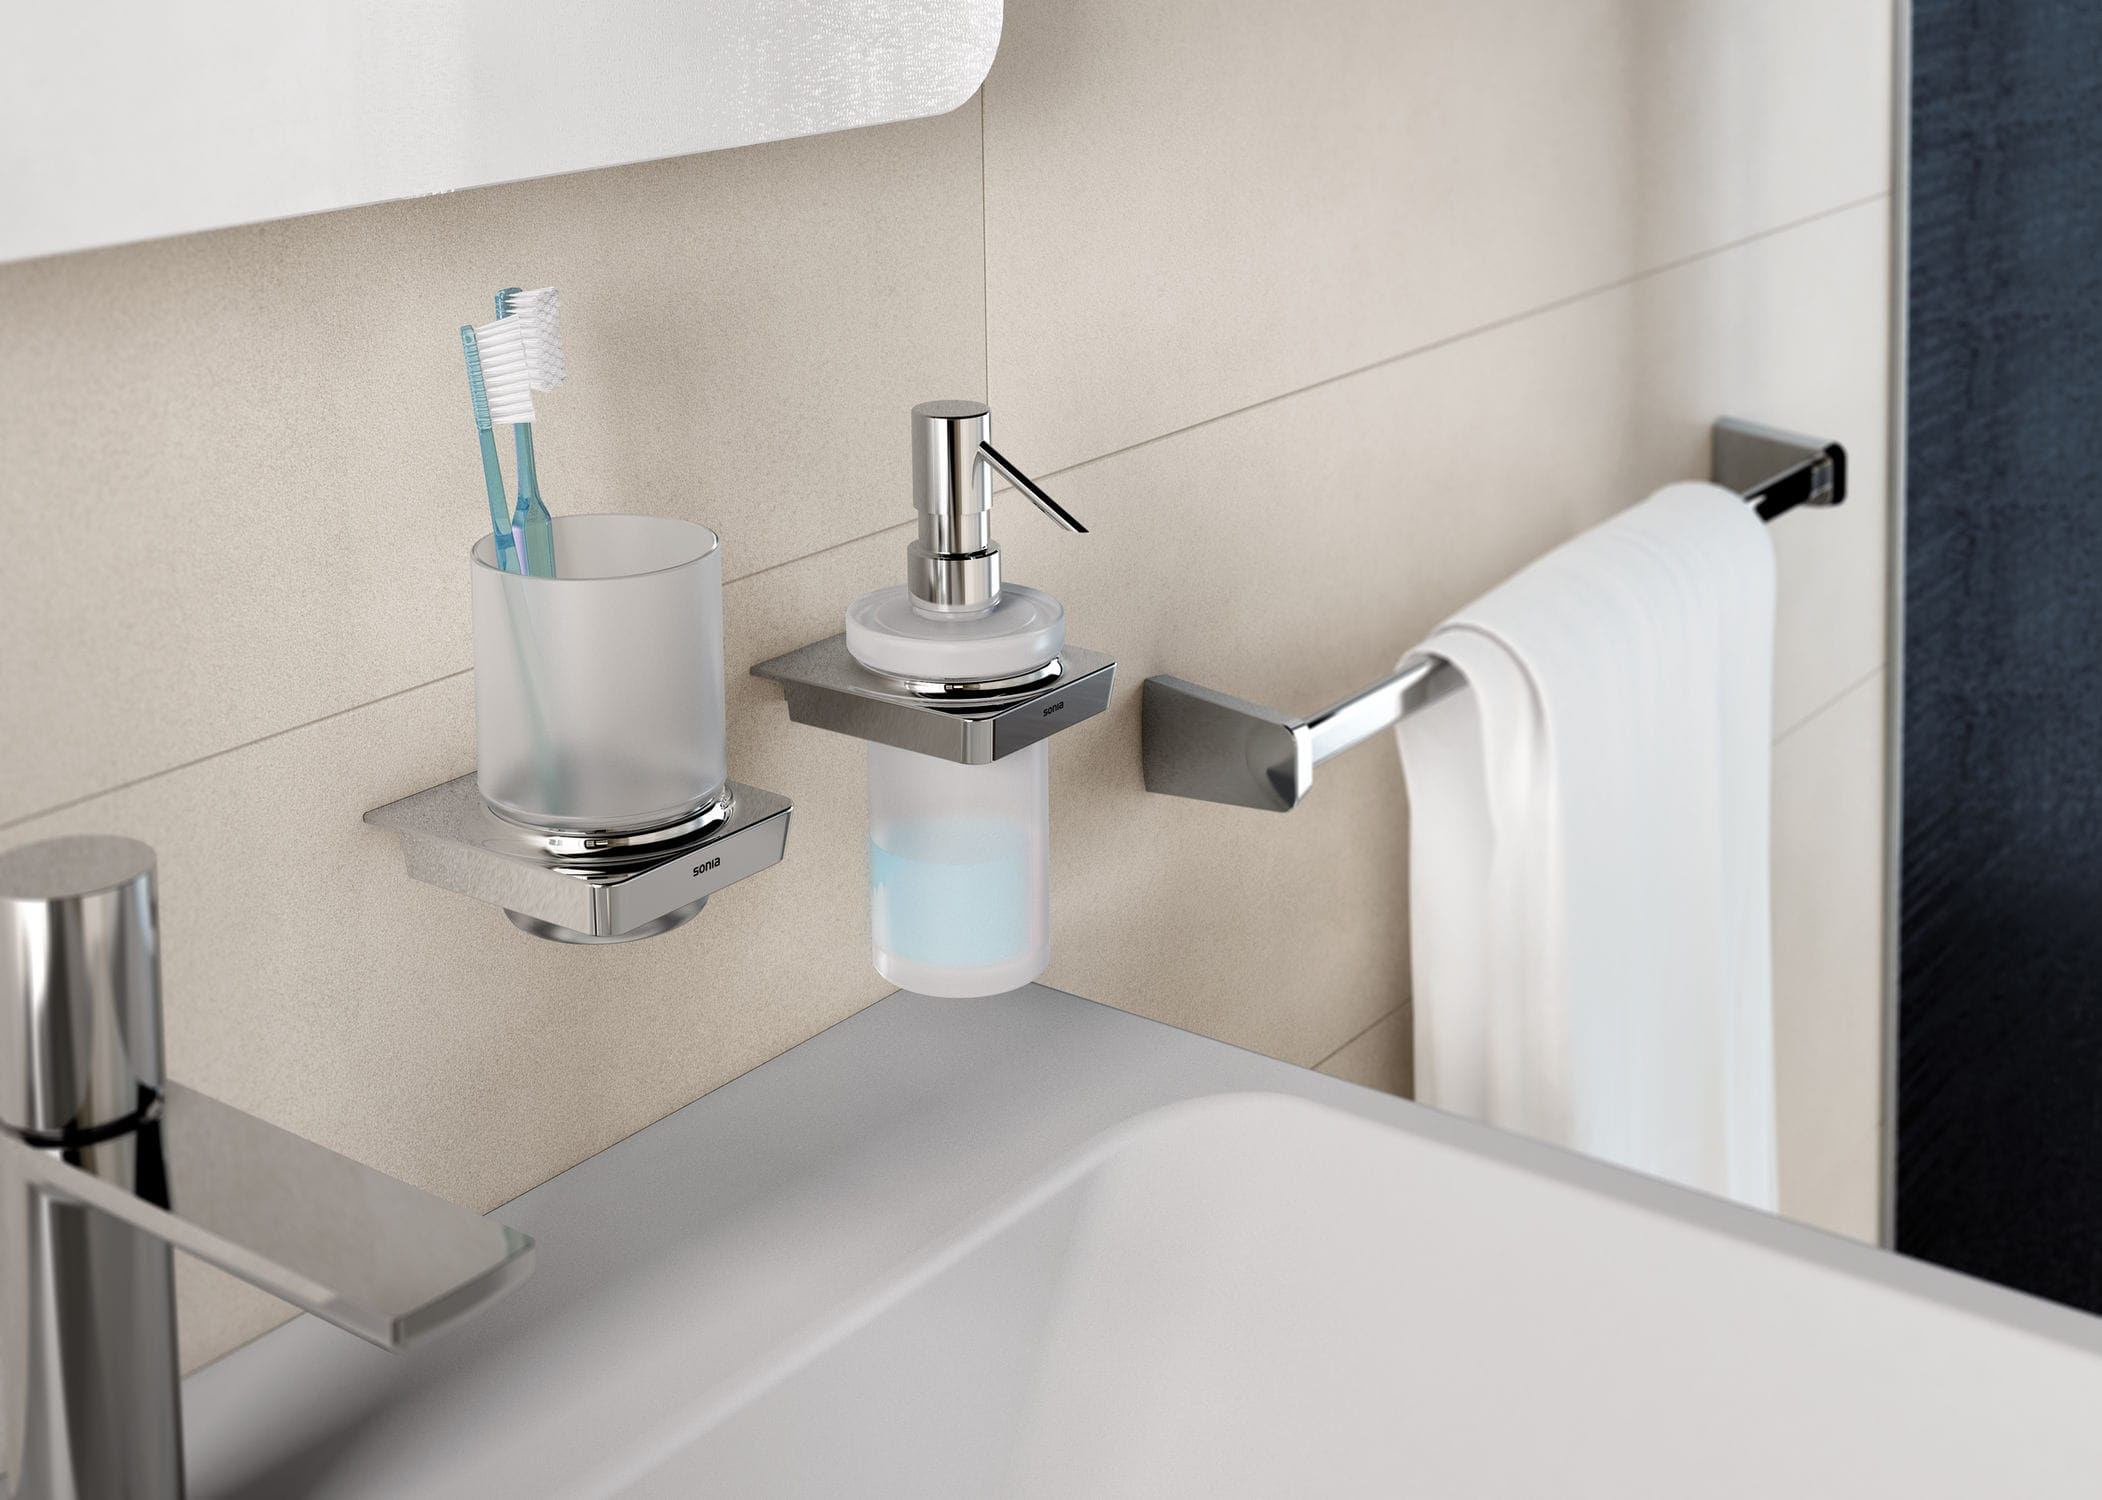 Commercial Soap Dispenser Wall Mounted Metal Manual S6